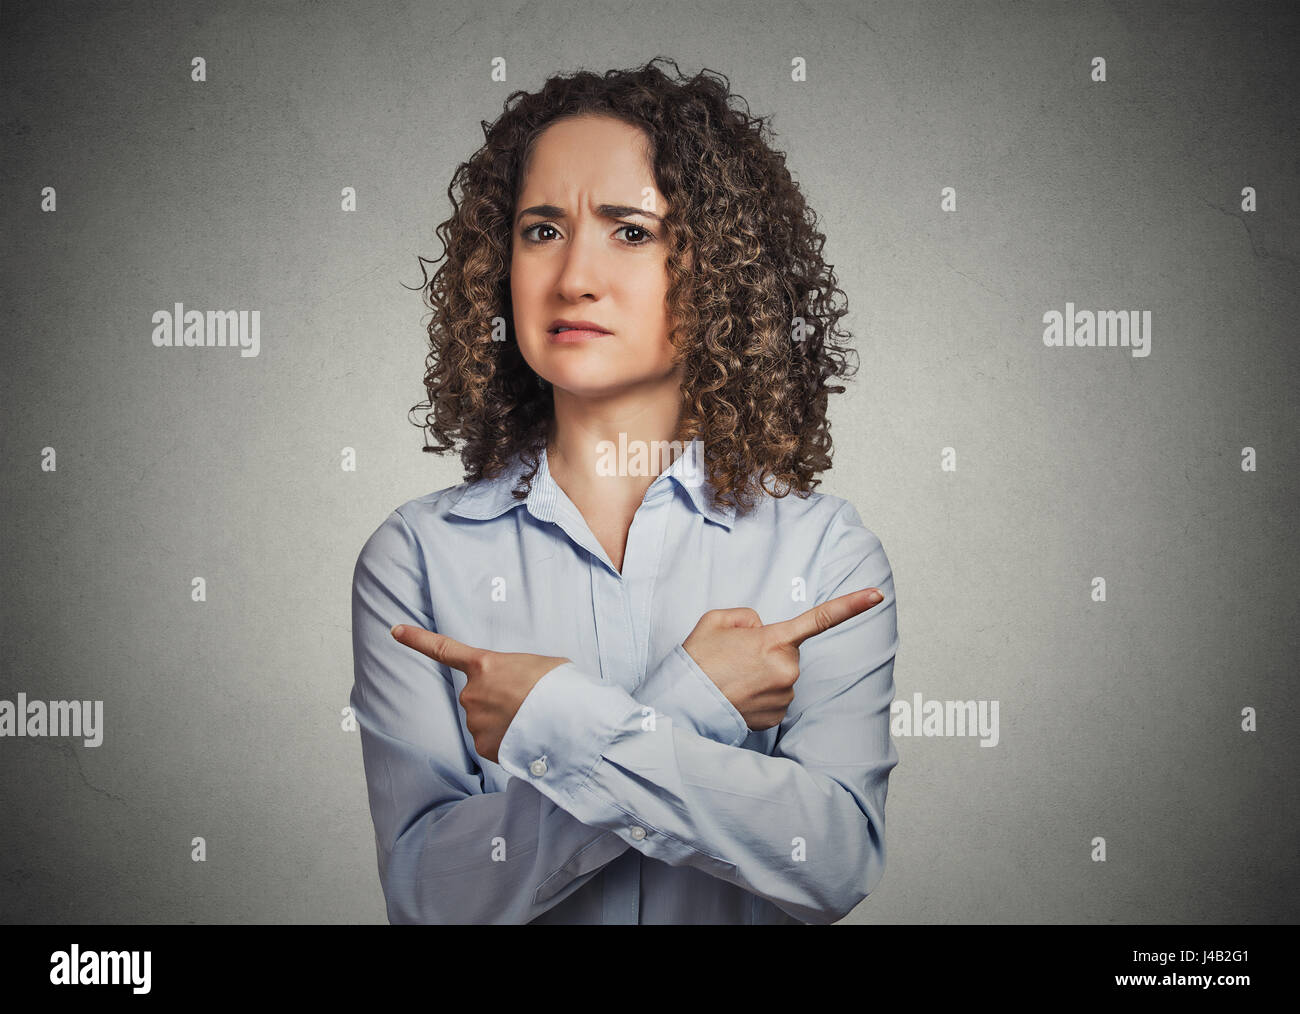 Indecision confusion. Portrait confused young woman pointing in two different directions not sure which way to go - Stock Image